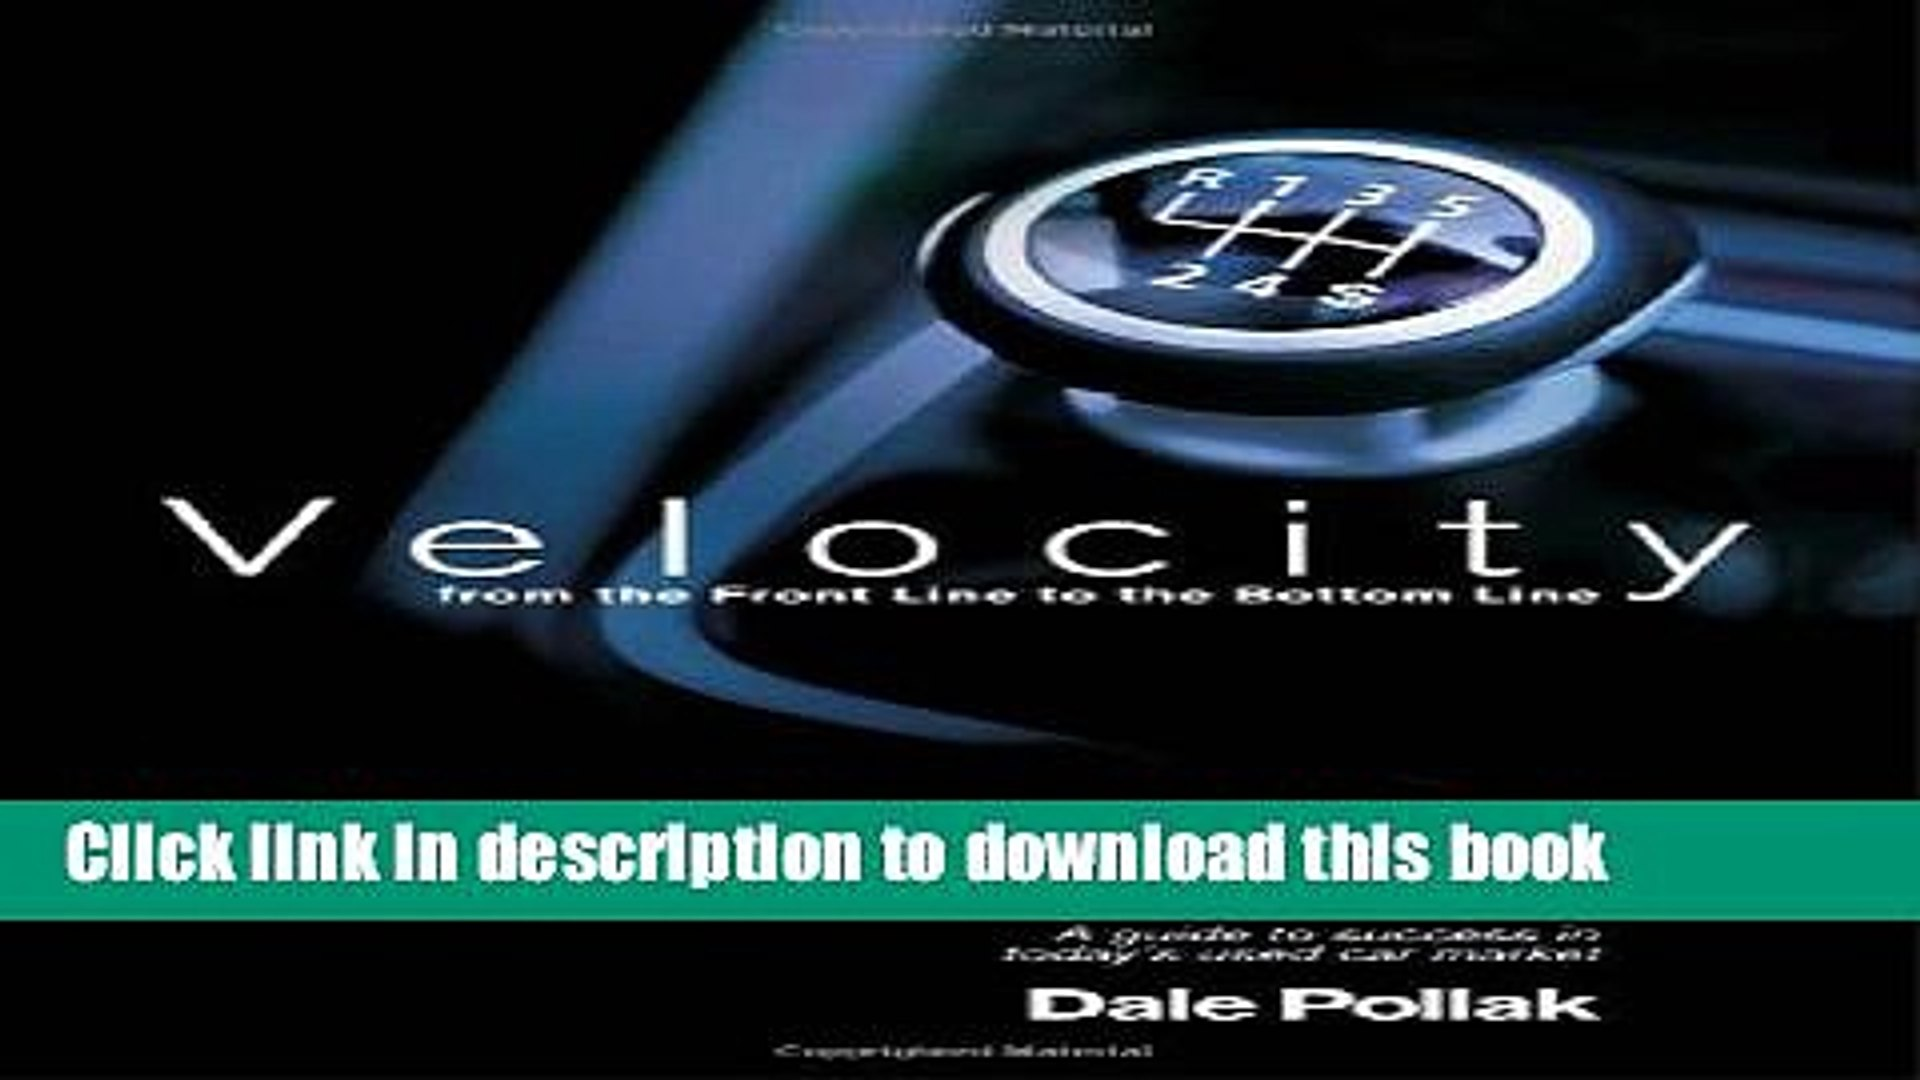 Books Velocity: From the Front Line to the Bottom Line Full Online